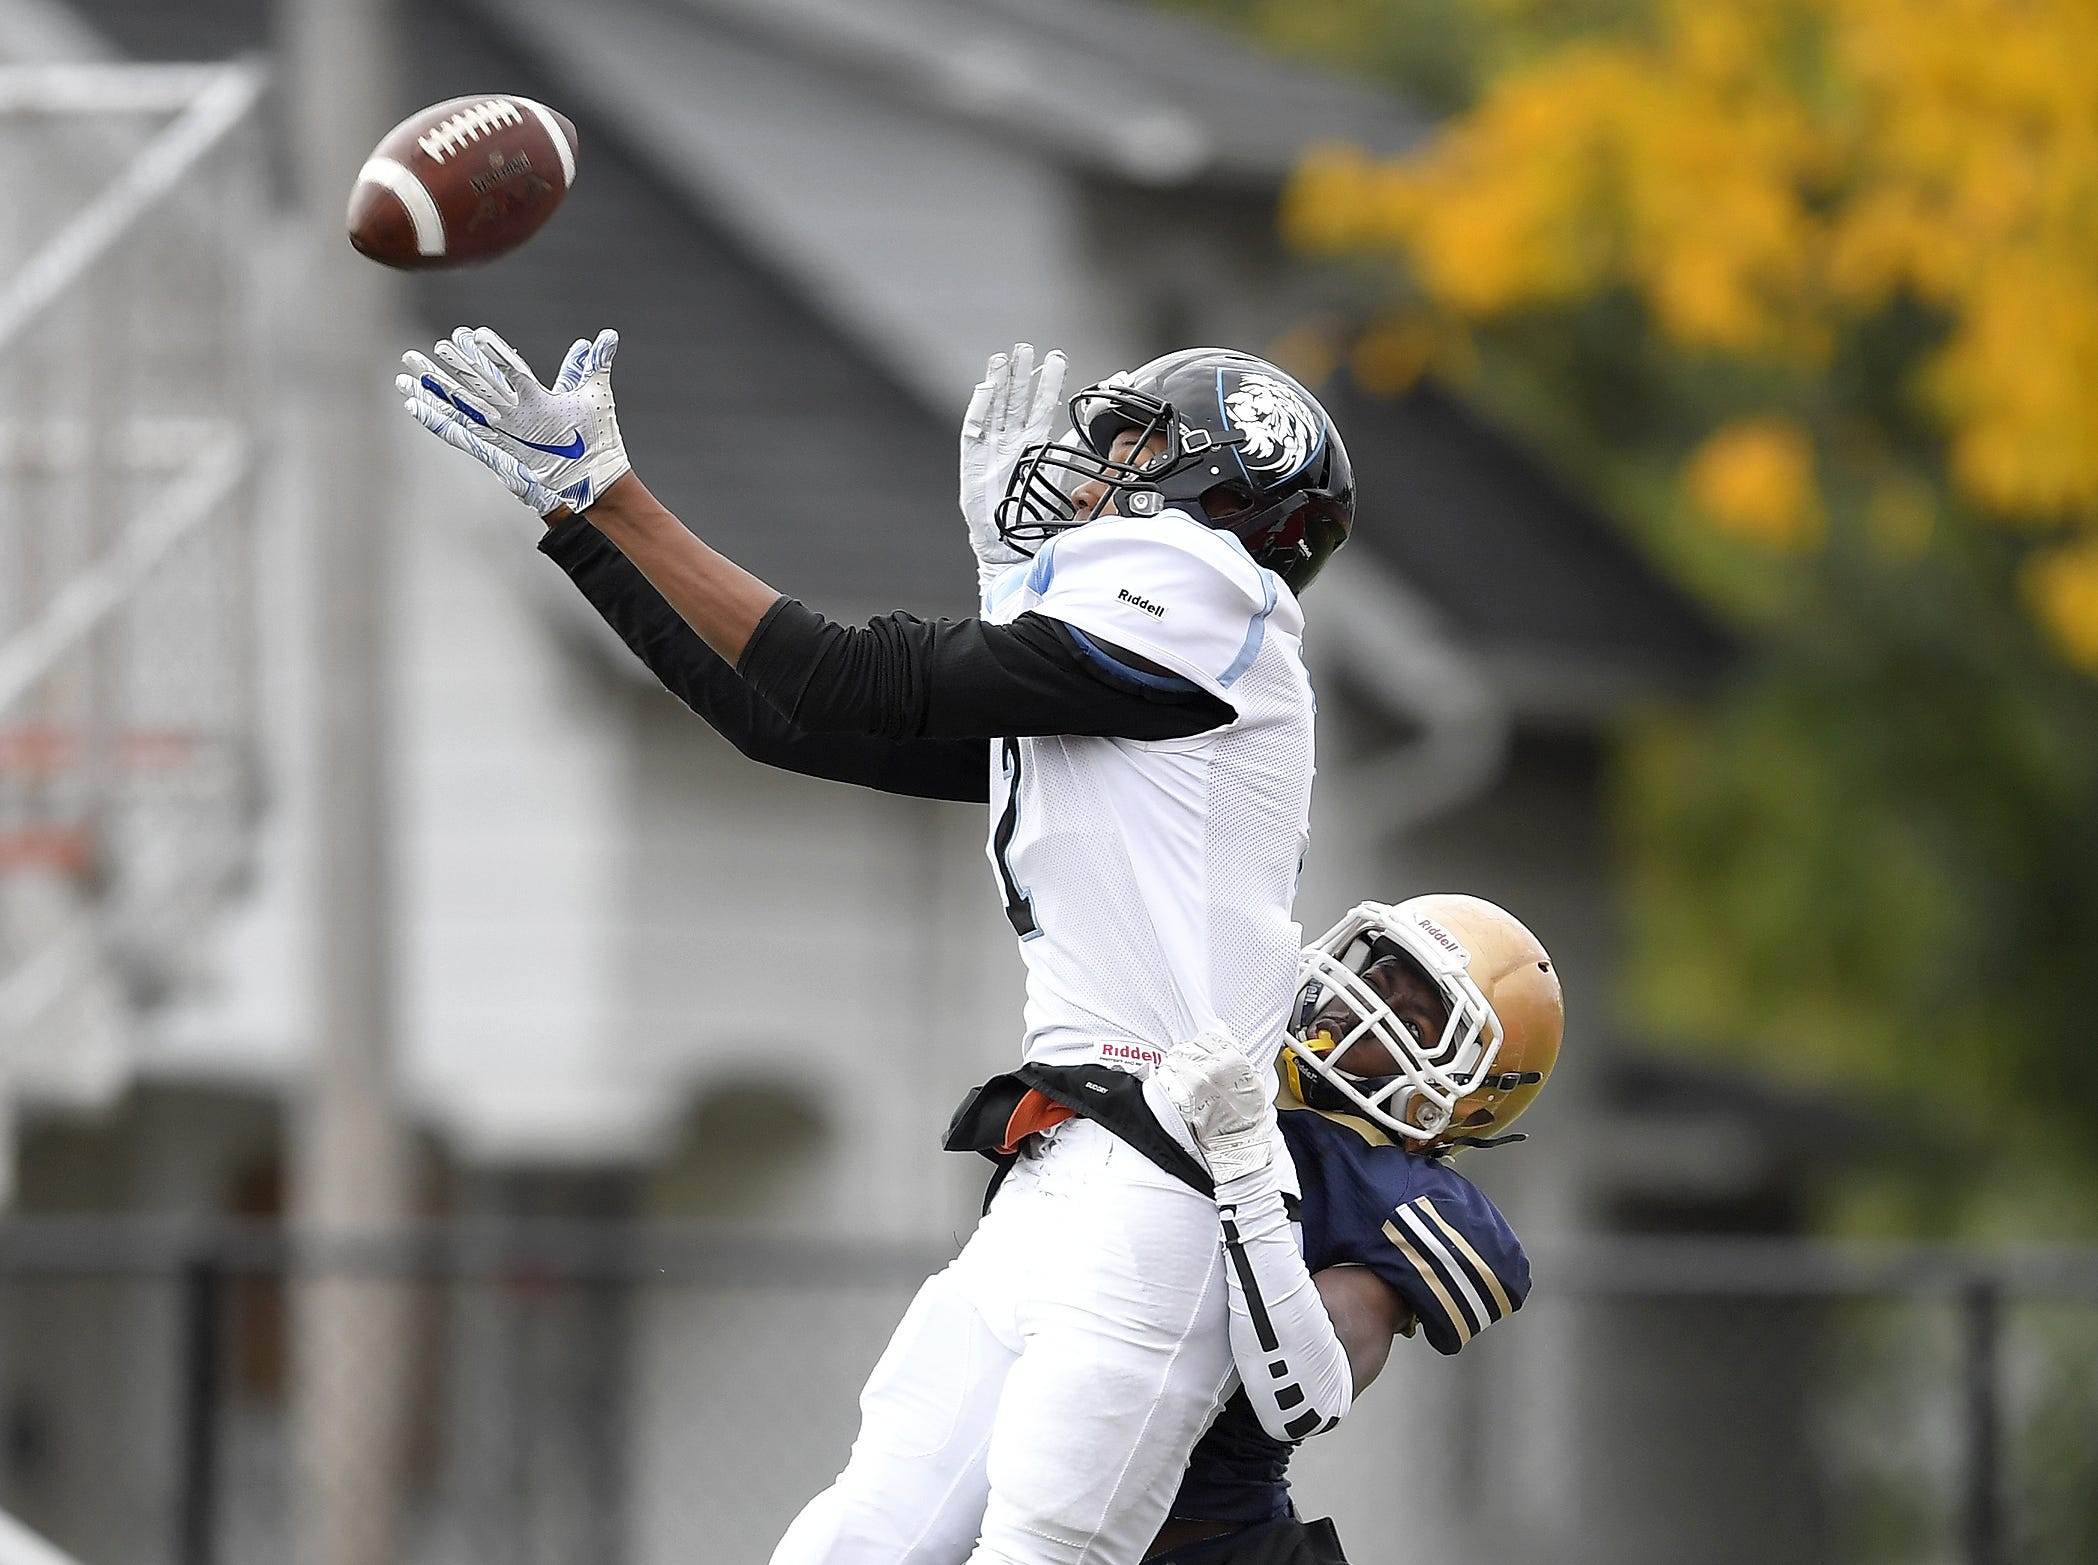 Bishop Kearney's Kidtrell Blocker, left, catches a pass while defended by Leadership's Maurice Glenn during a regular season game played at Franklin High School, Saturday, Oct. 13, 2018. Leadership Academy beat Bishop Kearney/Rochester Prep 12-6.